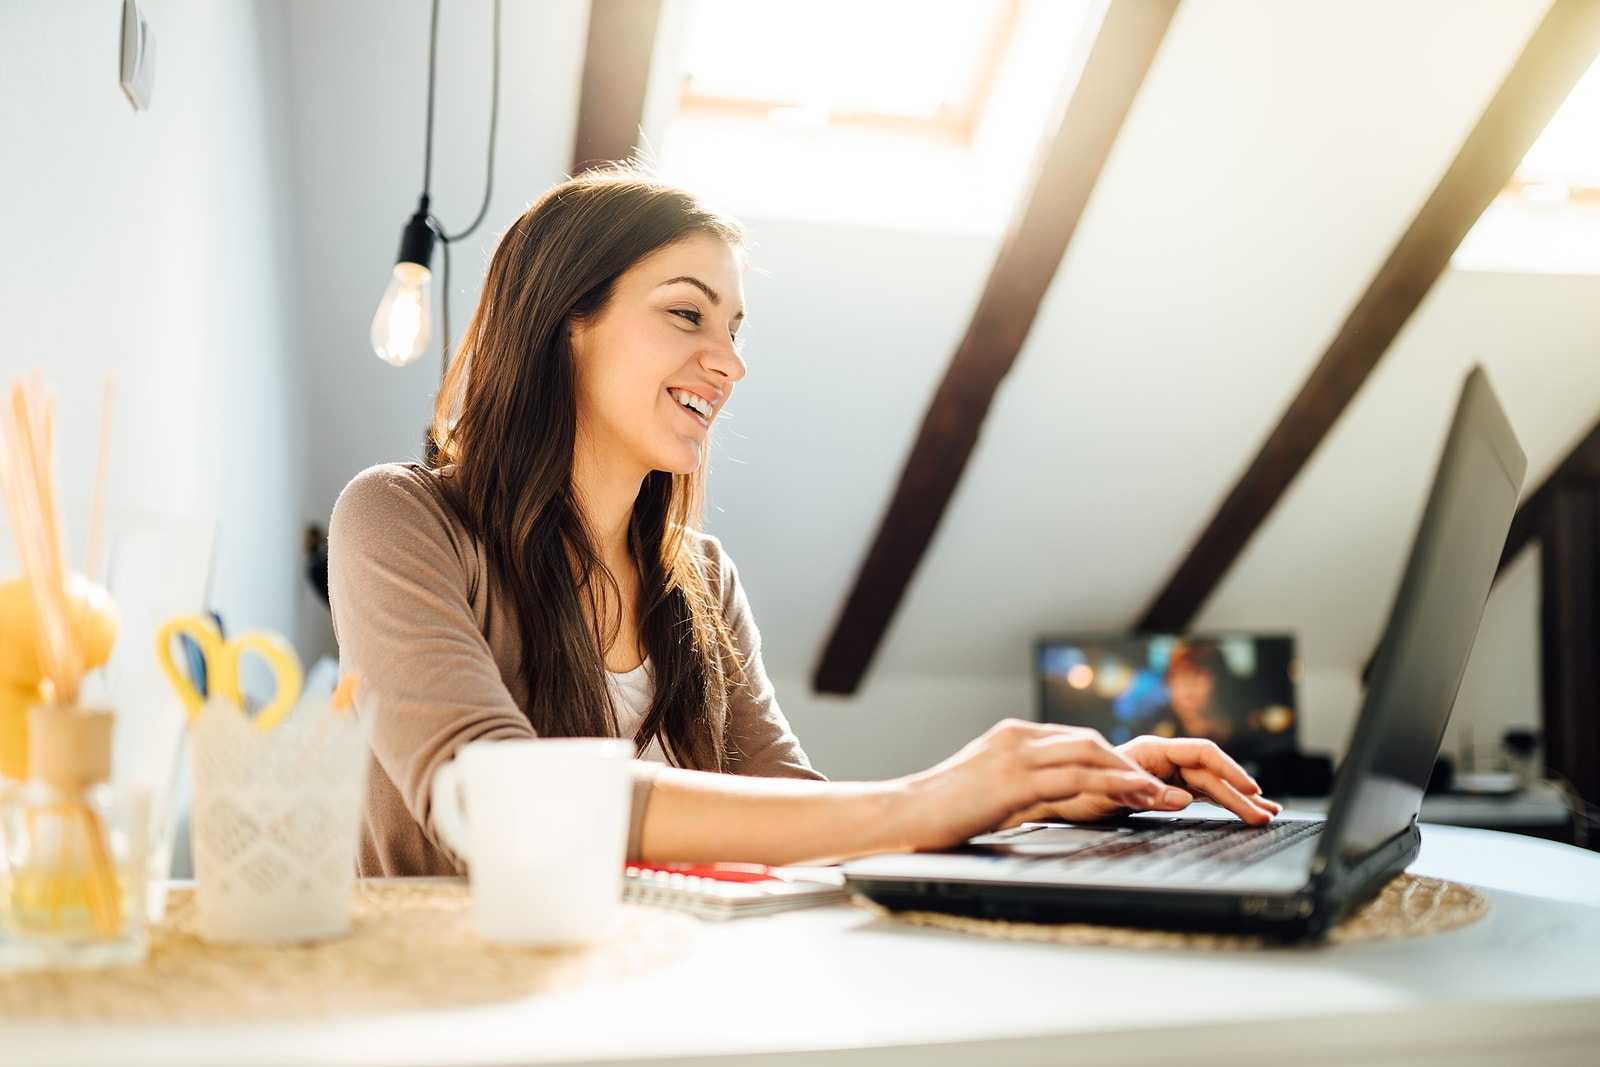 bigstock-Business-Woman-Working-From-Ho-358804015-min